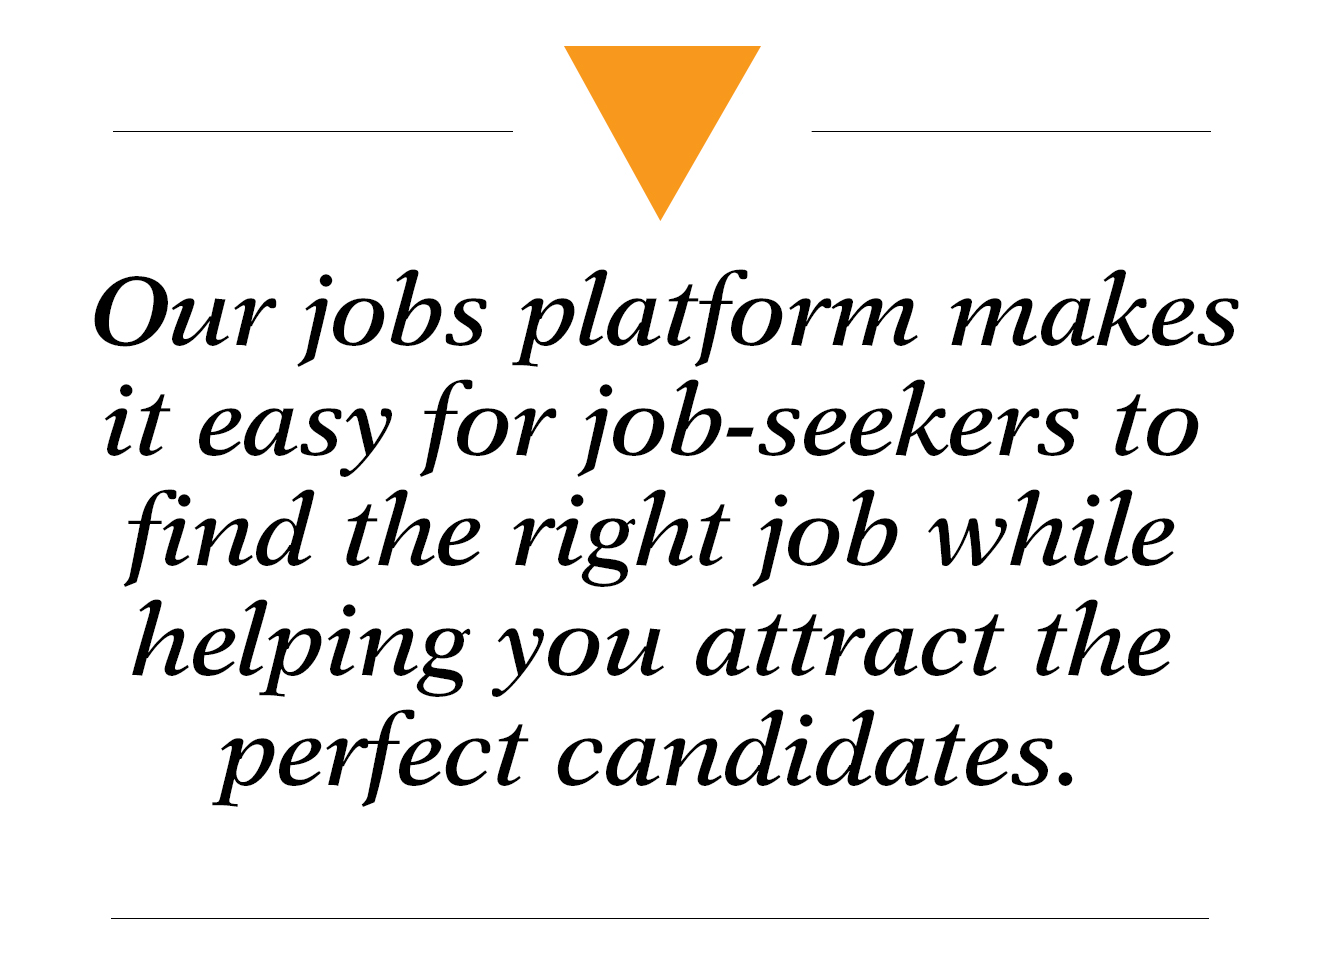 Our jobs platform makes it easy for job-seekers to find the right job while helping you attract the perfect candidates - recruitment solutions